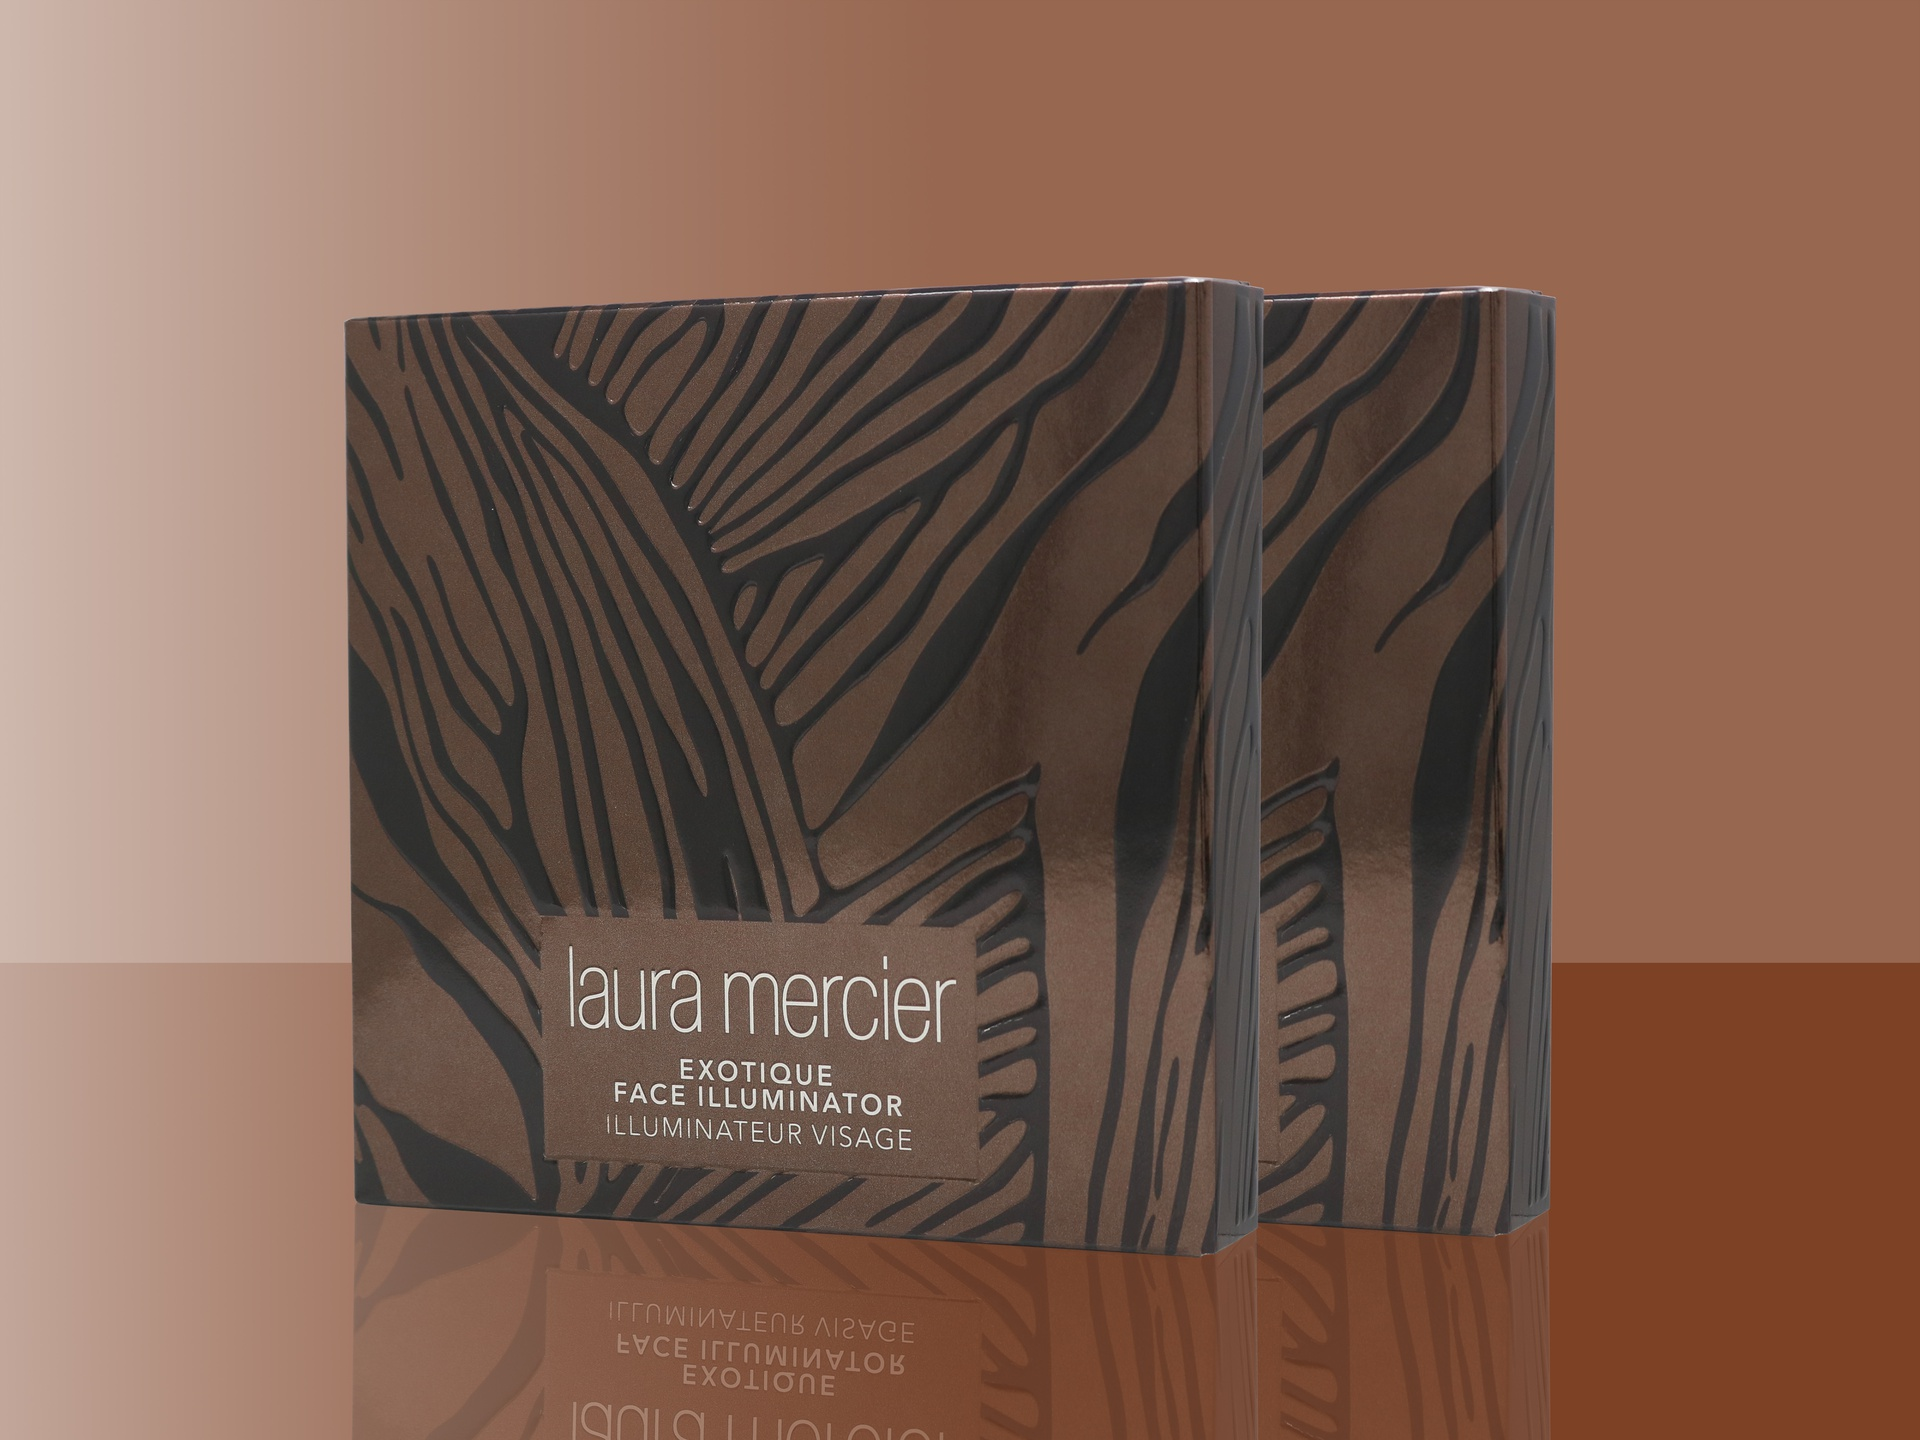 Laura Mercier's Exotique Face Illuminator packaging